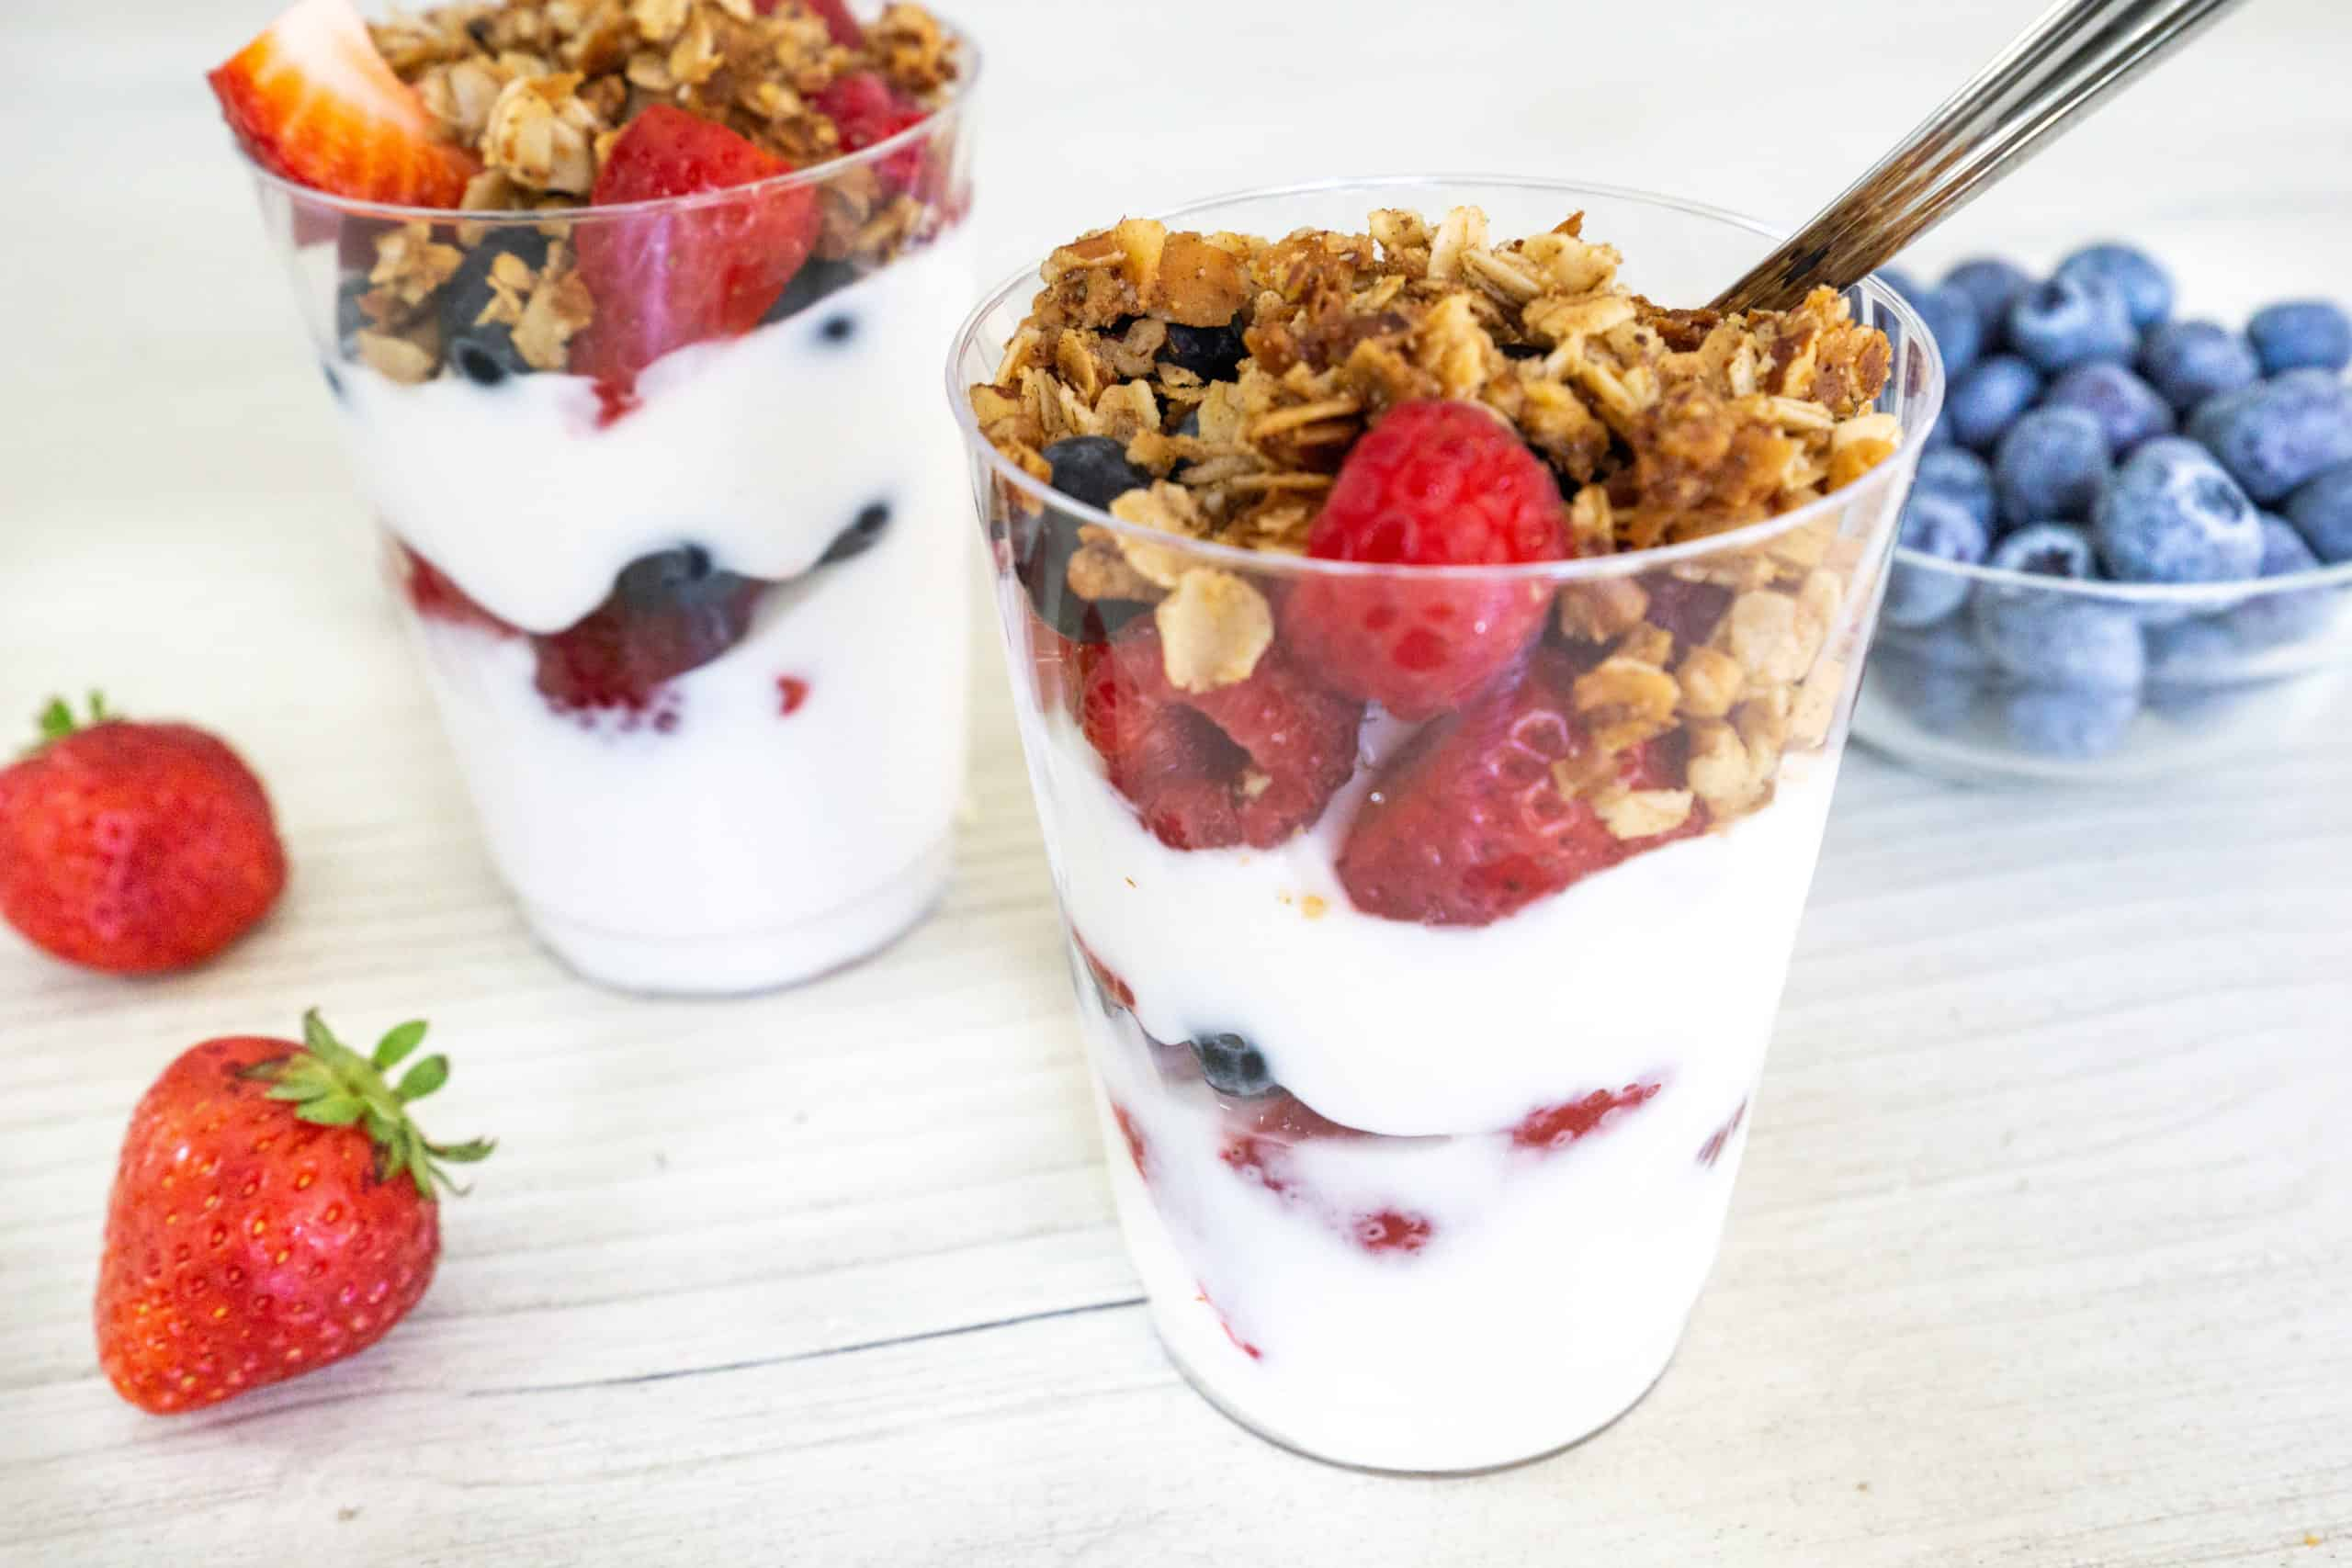 This healthy yogurt parfait is vegan, gluten free, low in sugar, and perfect for the whole family. It is great for breakfast, lunch, or an easy snack.